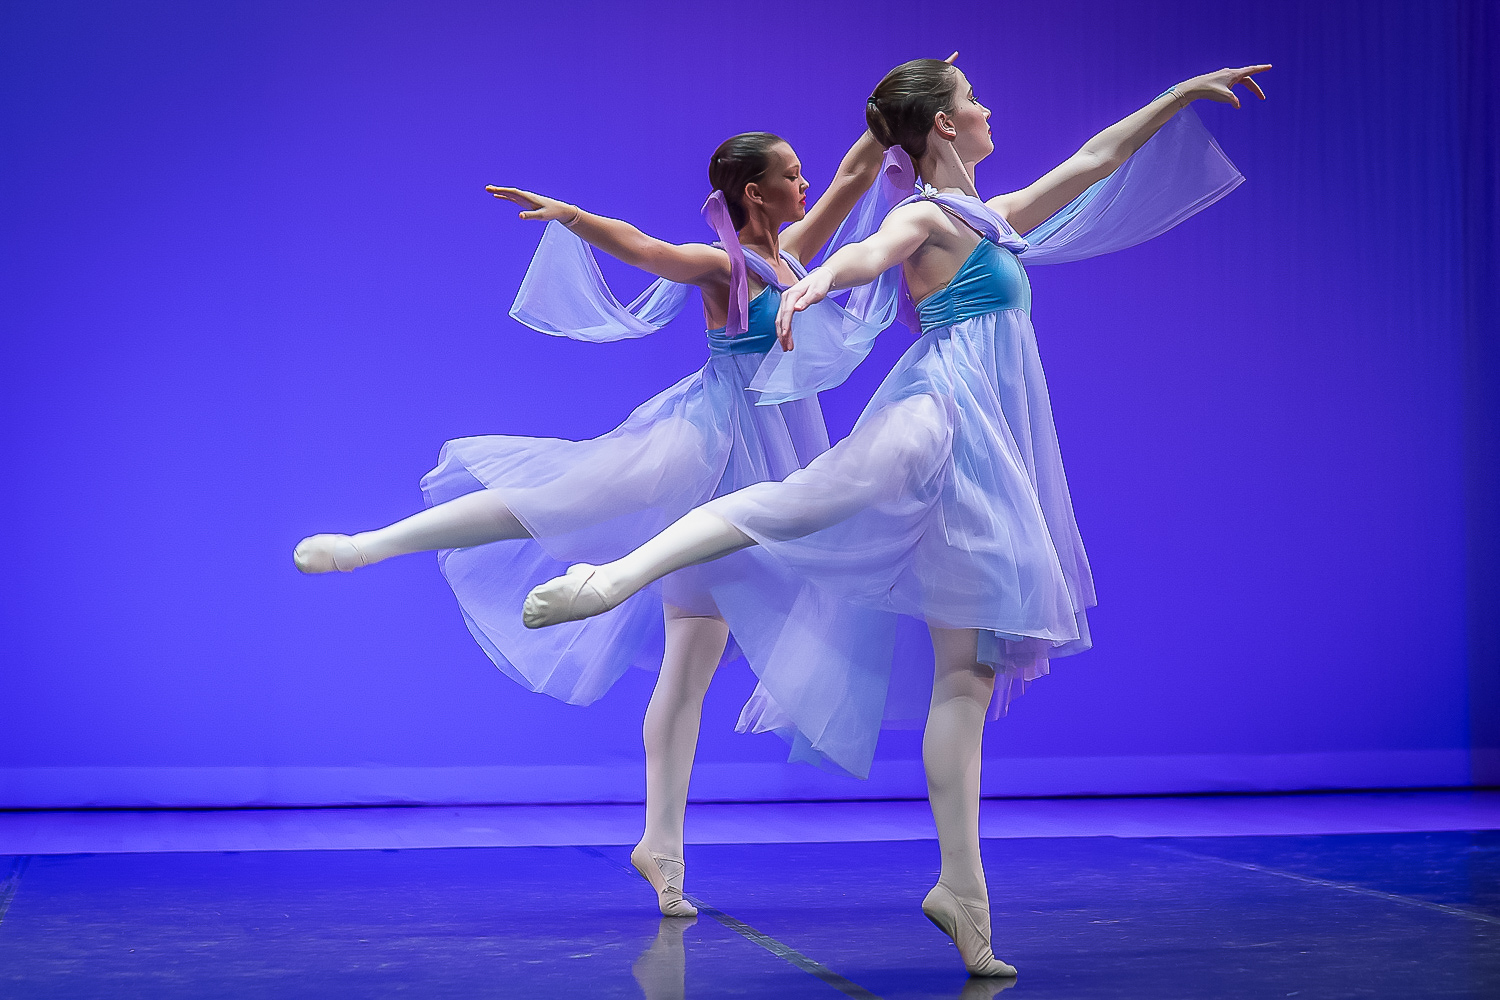 Image: Shooting these ballet dancers under frequently changing stage lighting without flash is a cha...